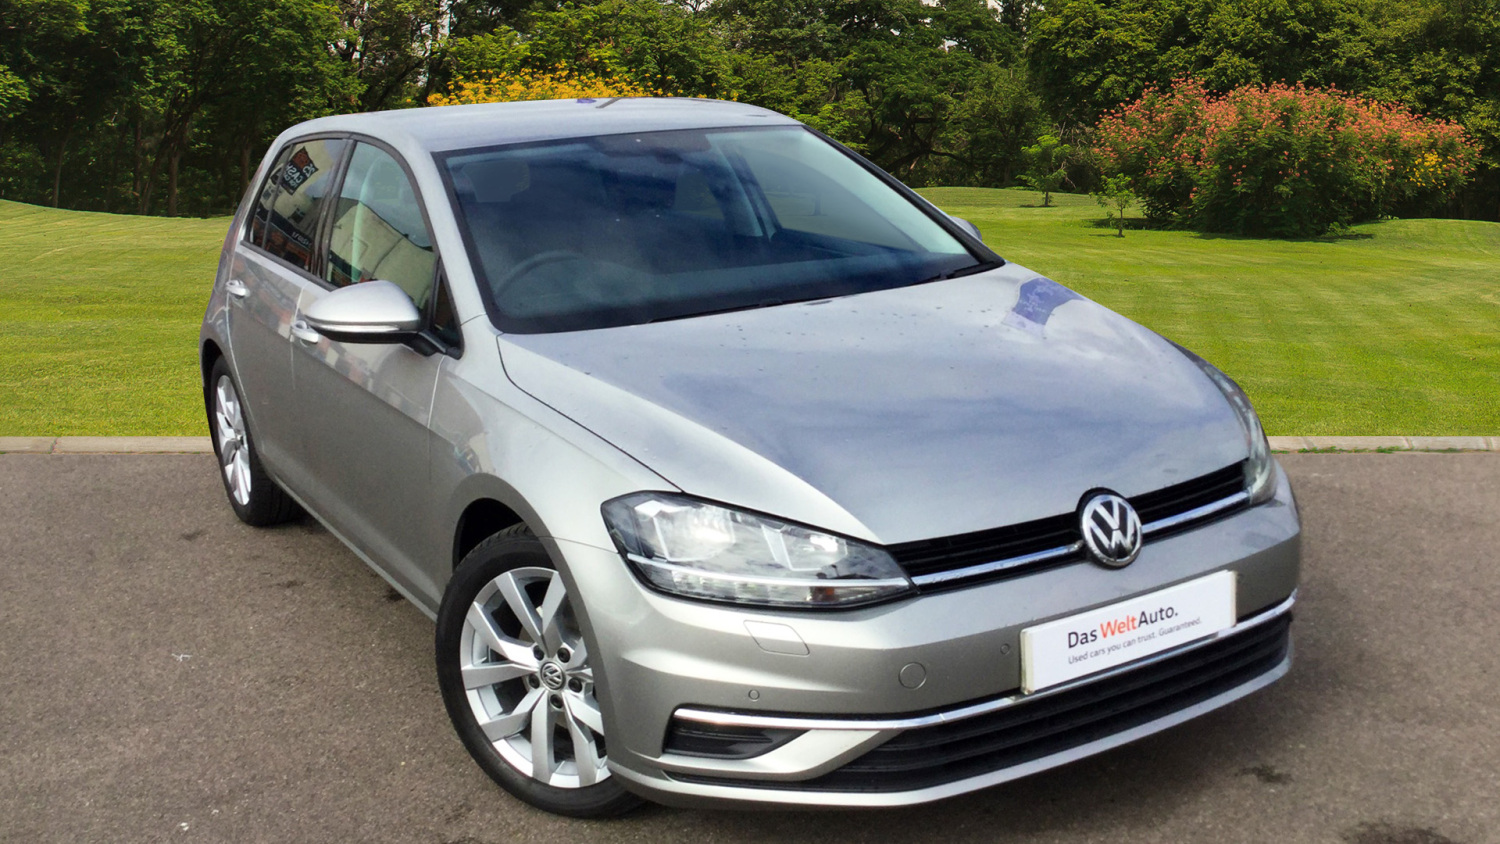 buy online volkswagen golf 1 4 tsi se nav 5dr dsg petrol hatchback for sale bristol street. Black Bedroom Furniture Sets. Home Design Ideas